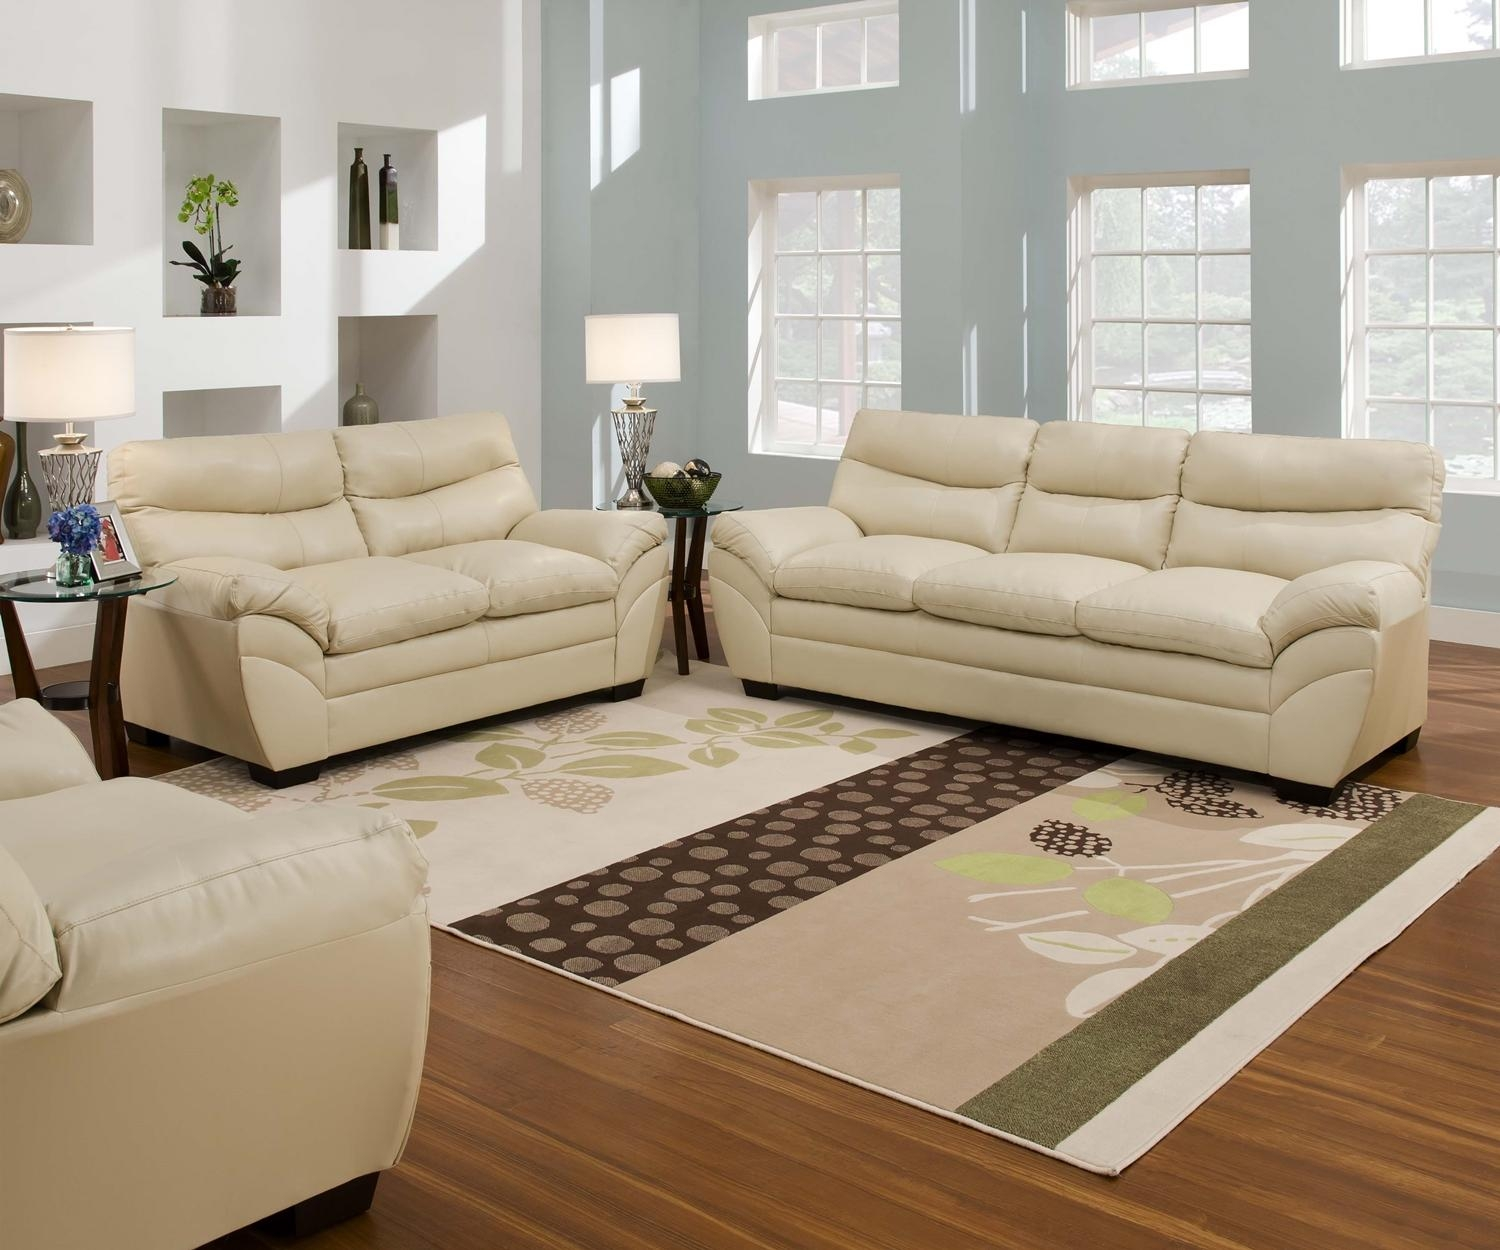 Cream Colored Living Room Furniture – Carameloffers In Cream Colored Sofas (View 7 of 20)